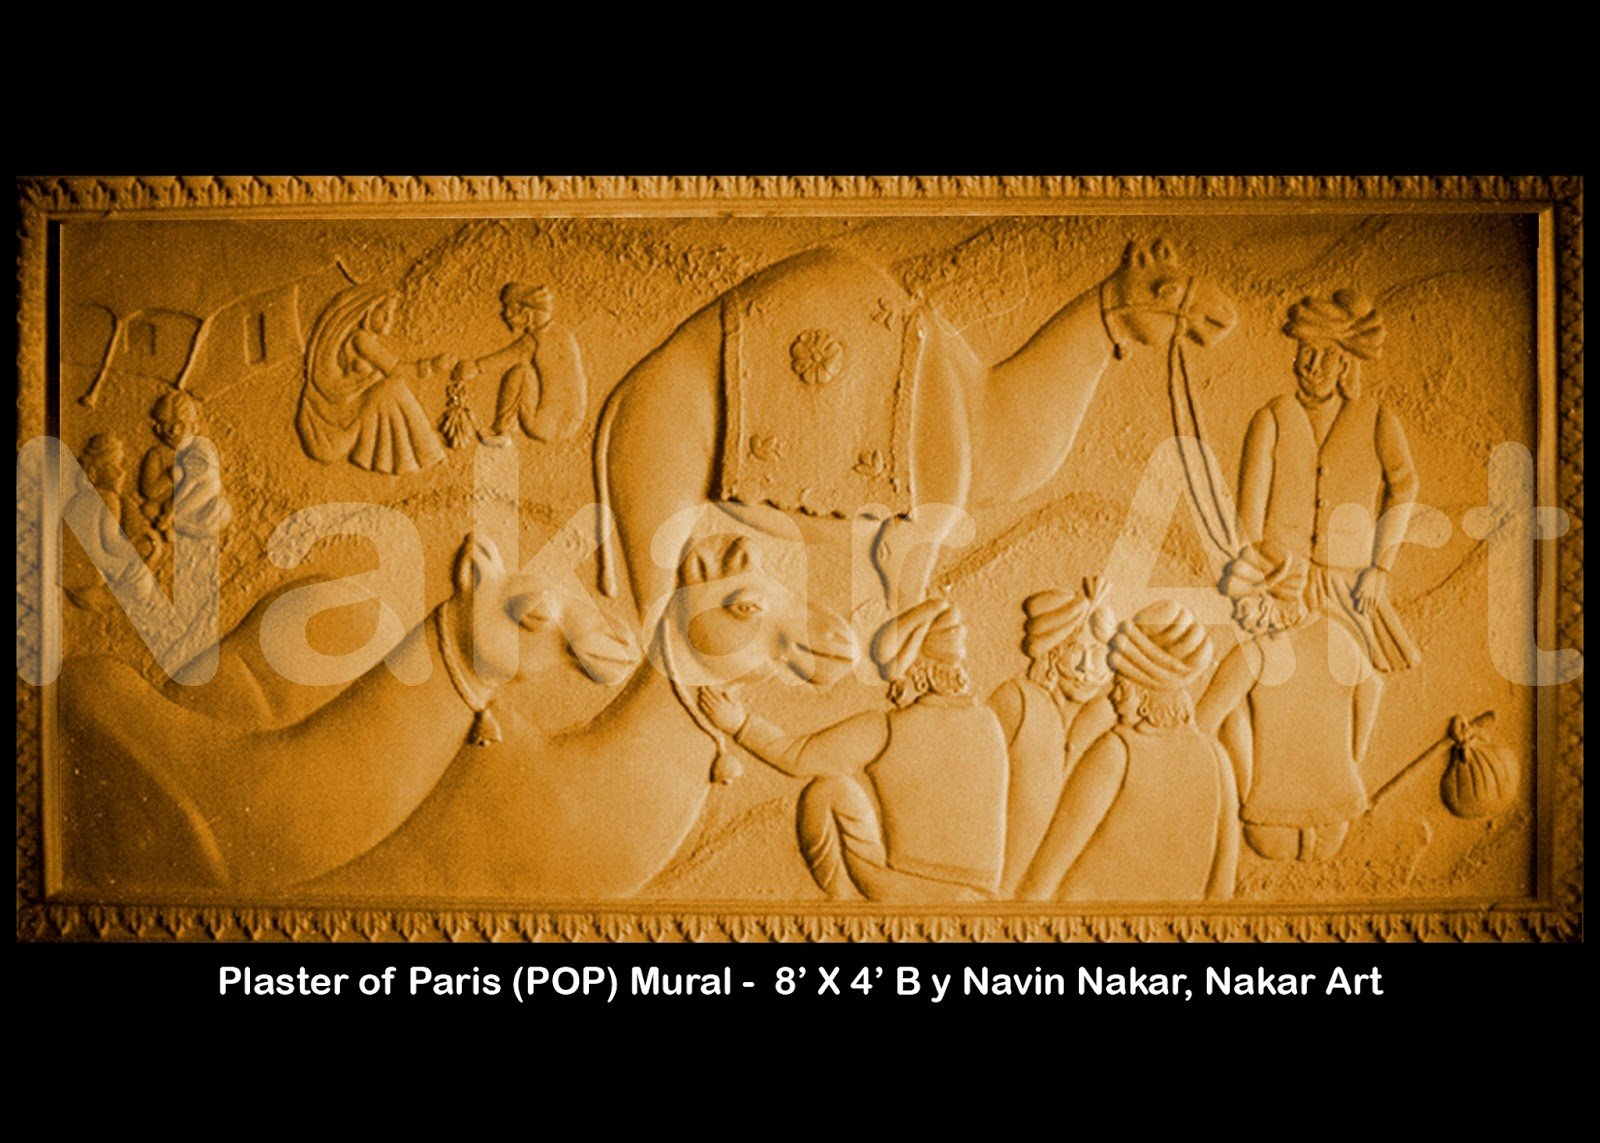 Mural Wall Art Decorations by me - Plaster of Paris Mural  sc 1 st  Navin nakar : plaster of paris wall art - www.pureclipart.com